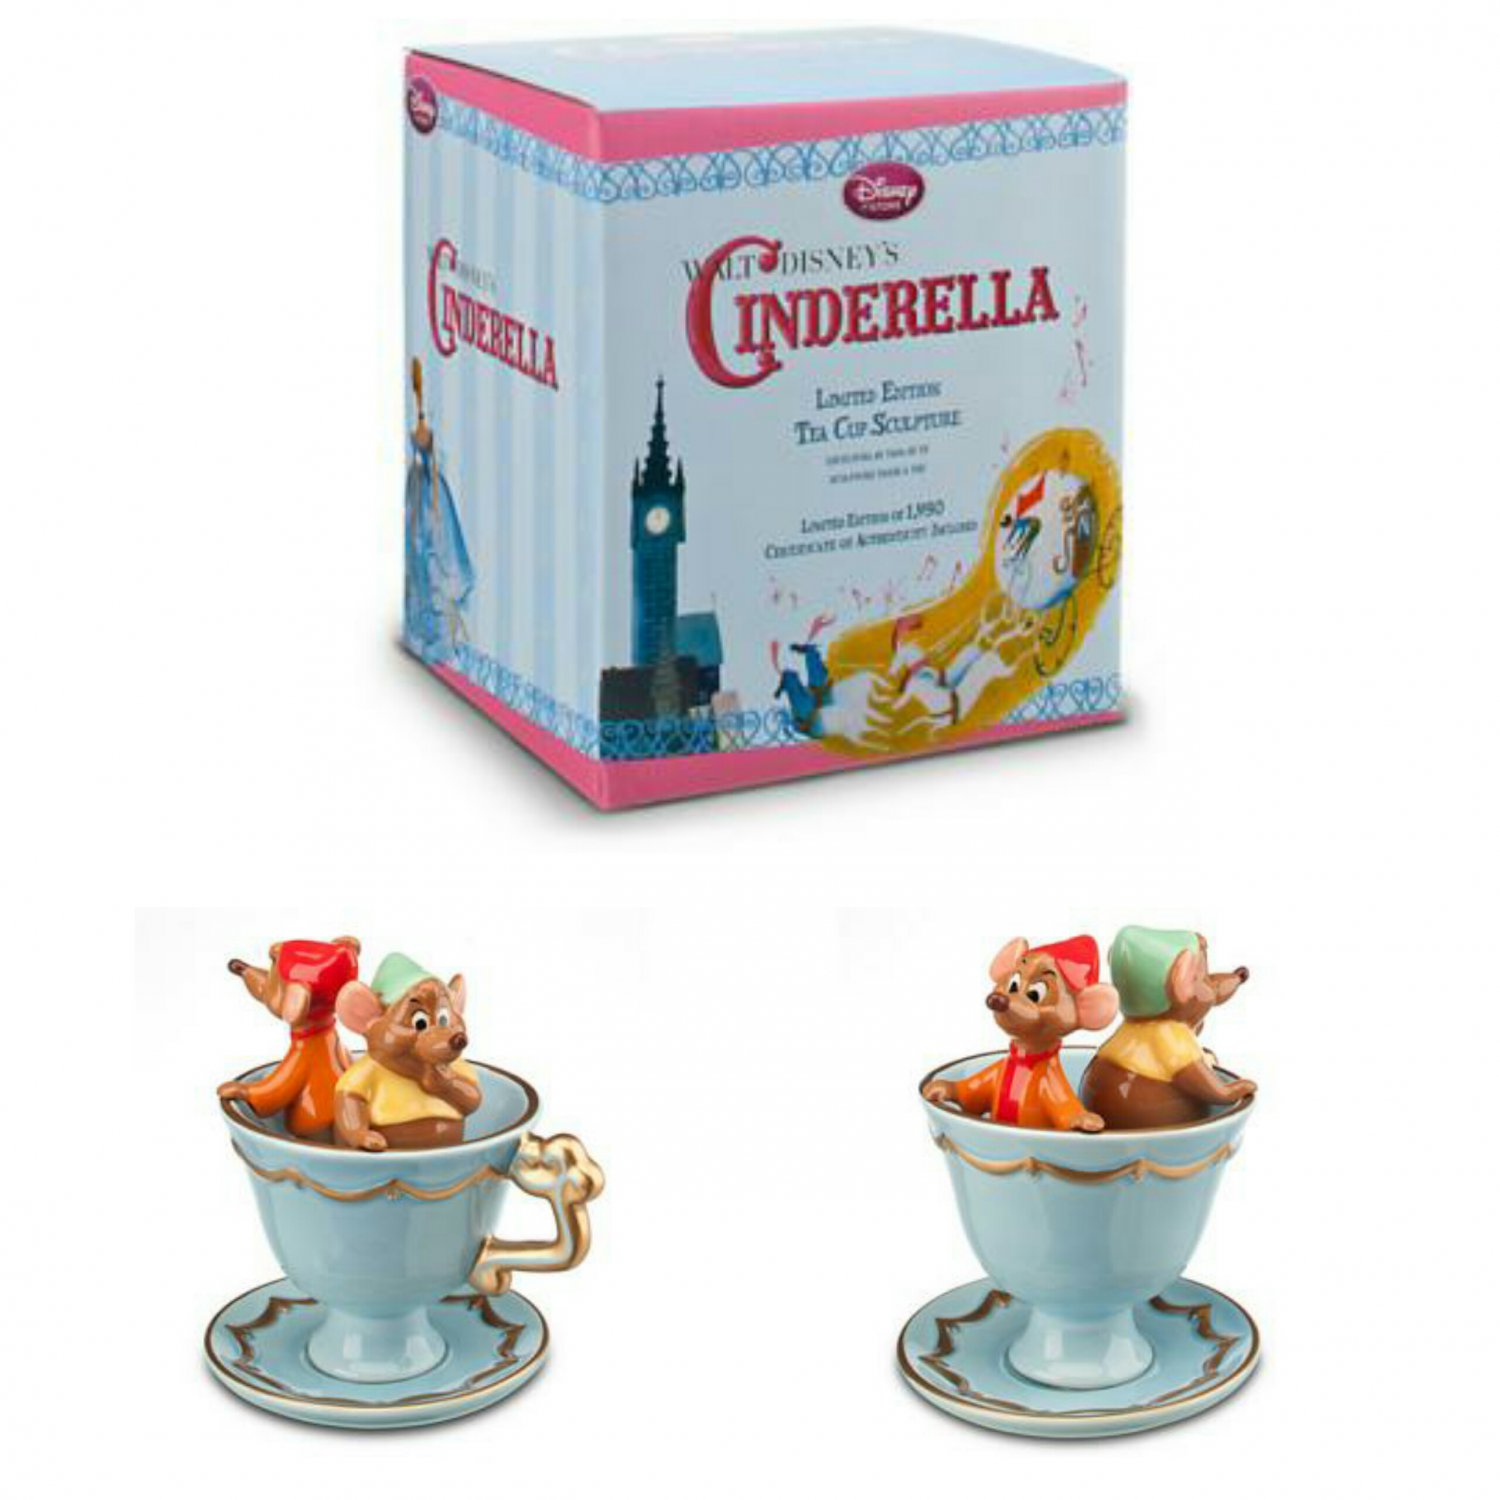 Disney Store Exclusive - Limited Edition Classic Cinderella Tea Cup with Jaq & Gus Figurine